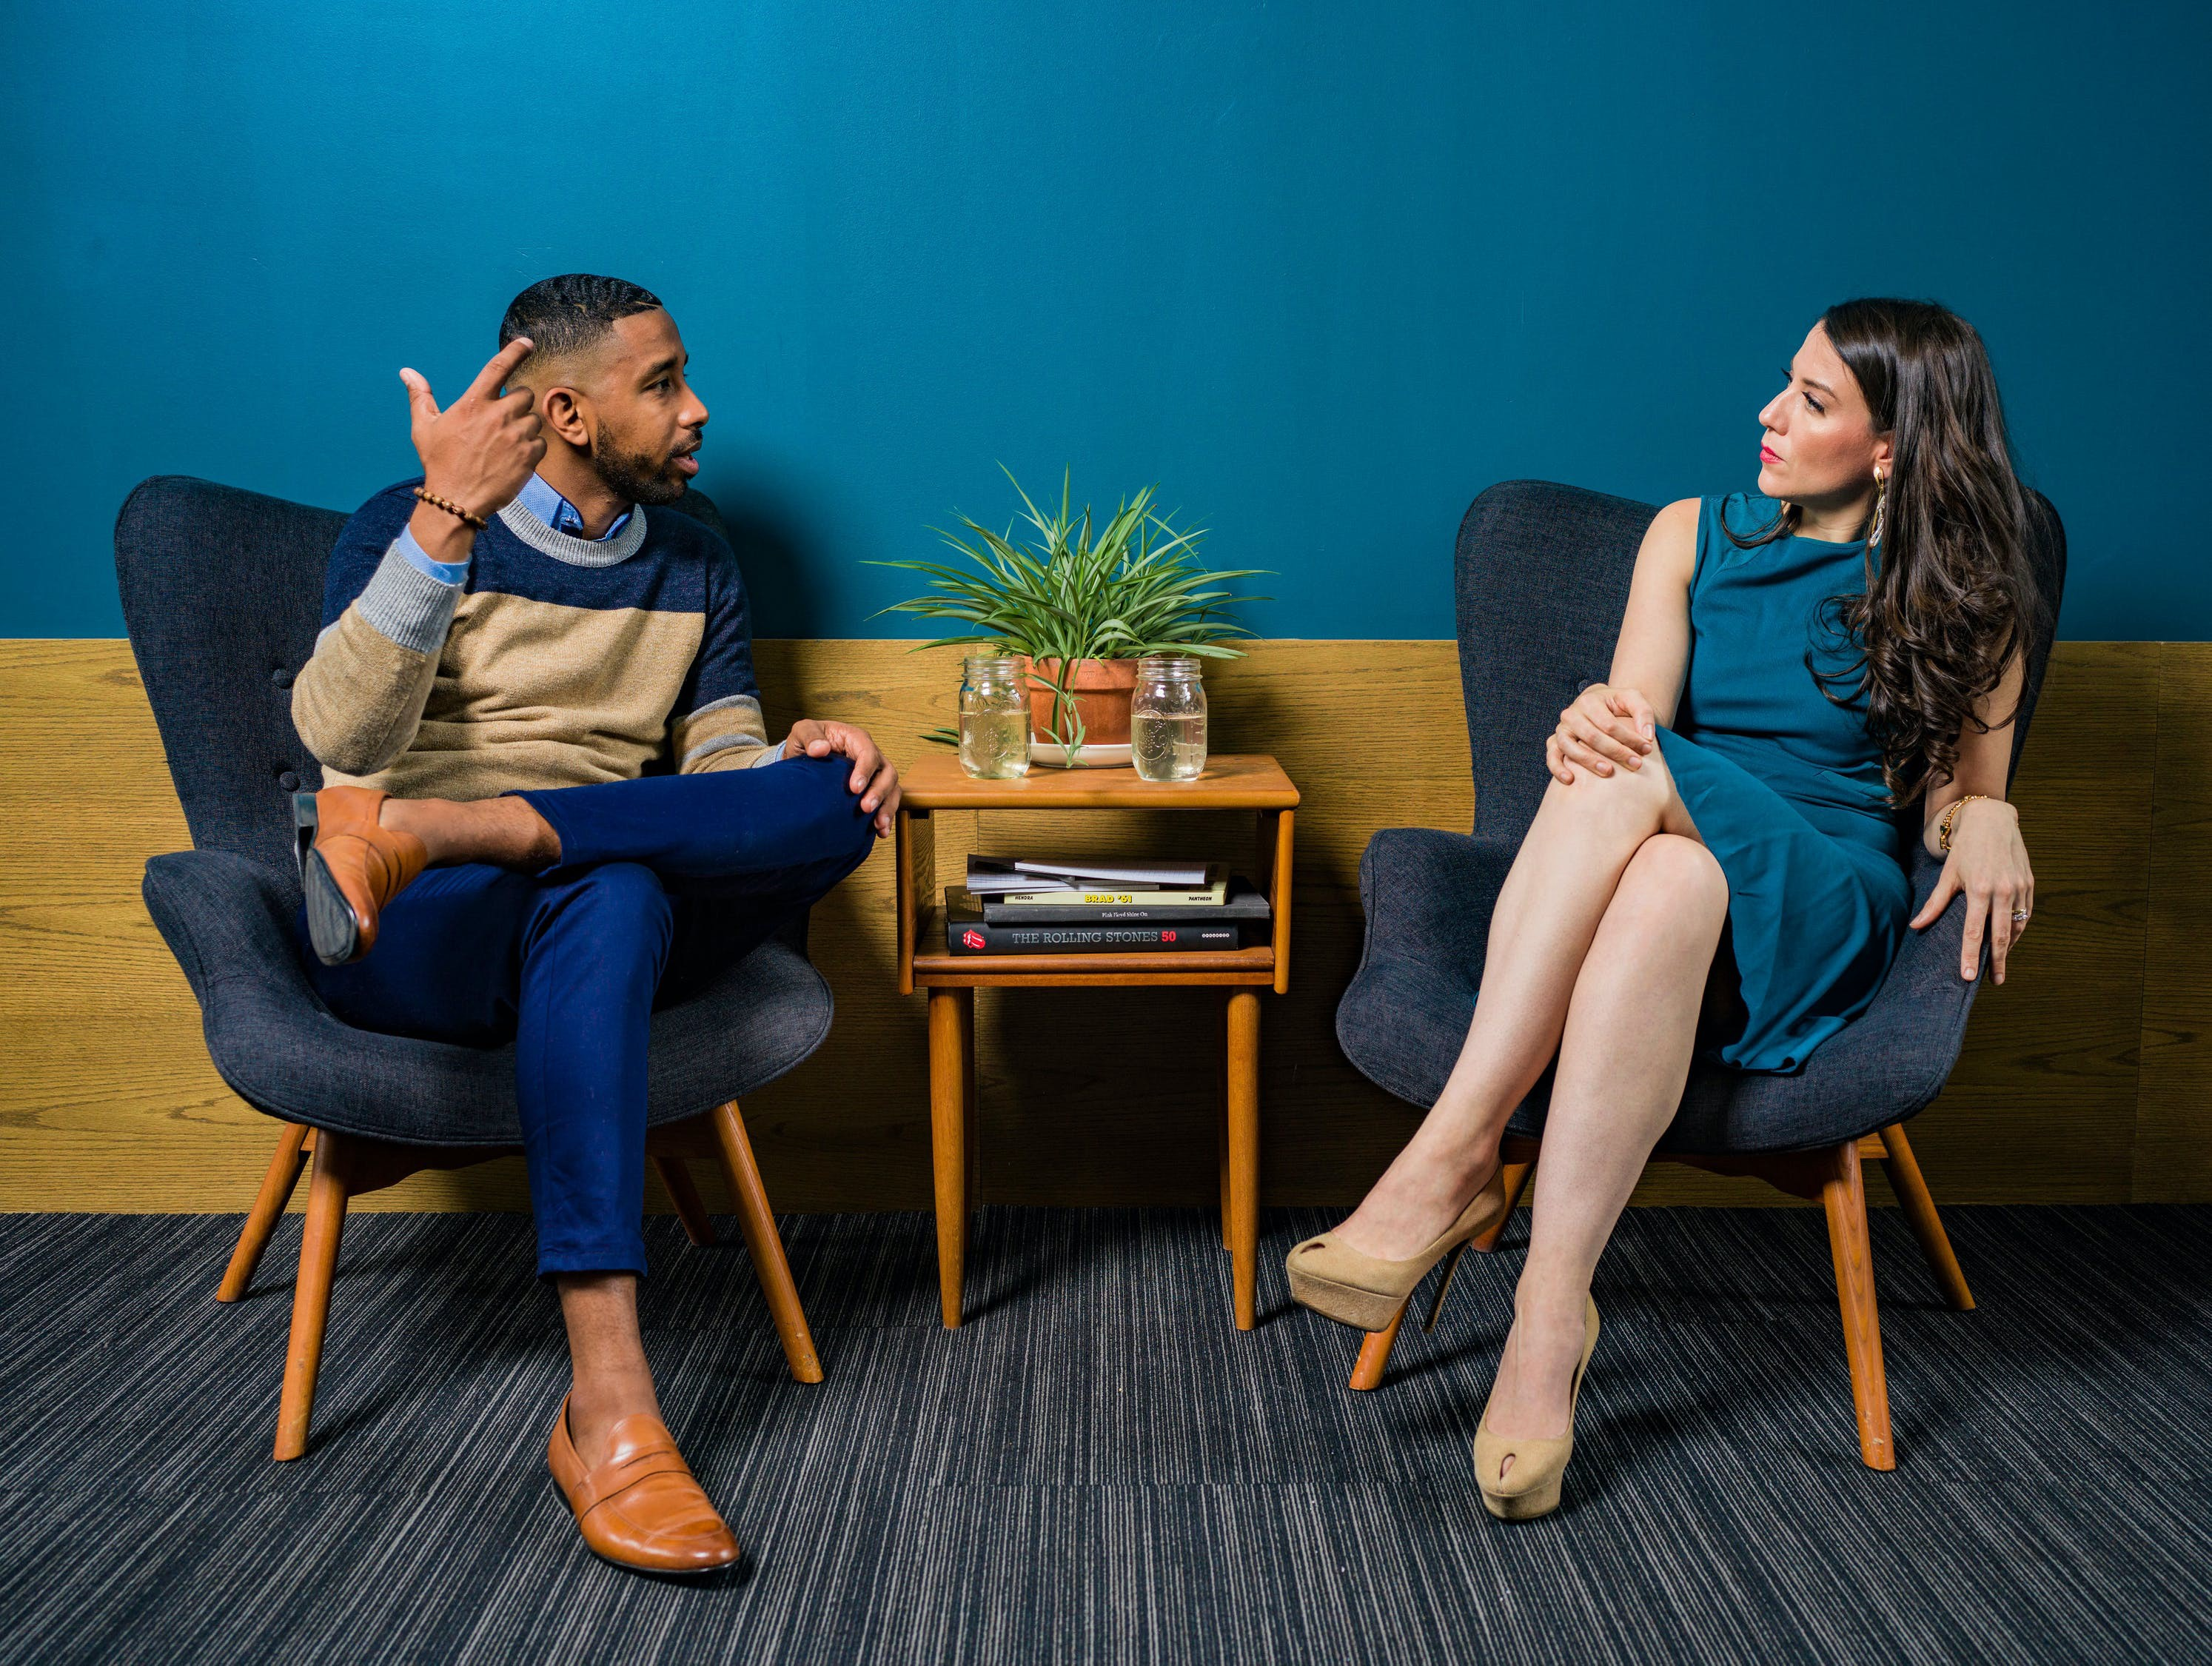 Two people having a meeting